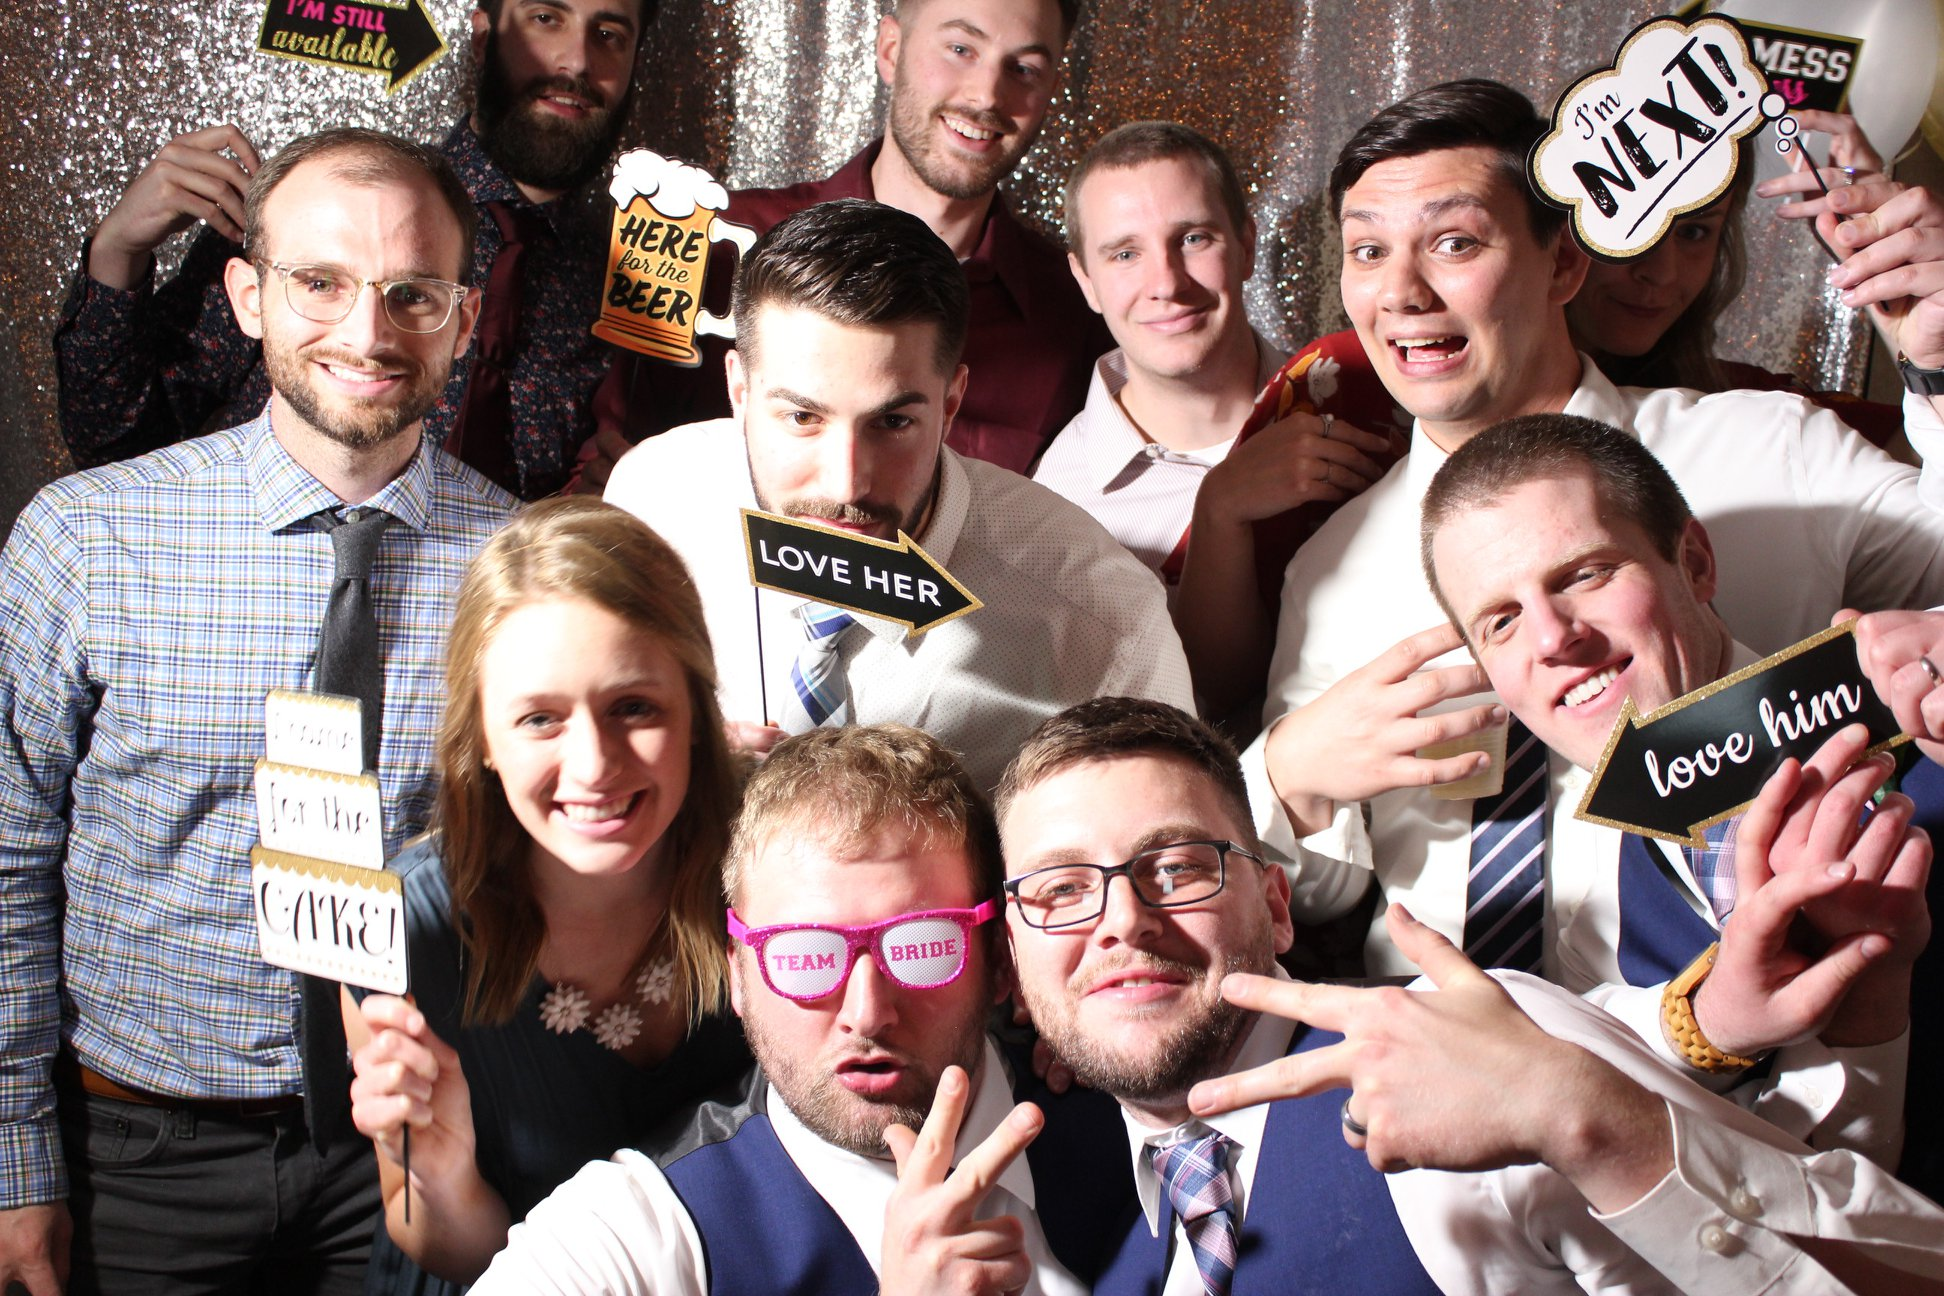 Wedding Photobooth Image Guys